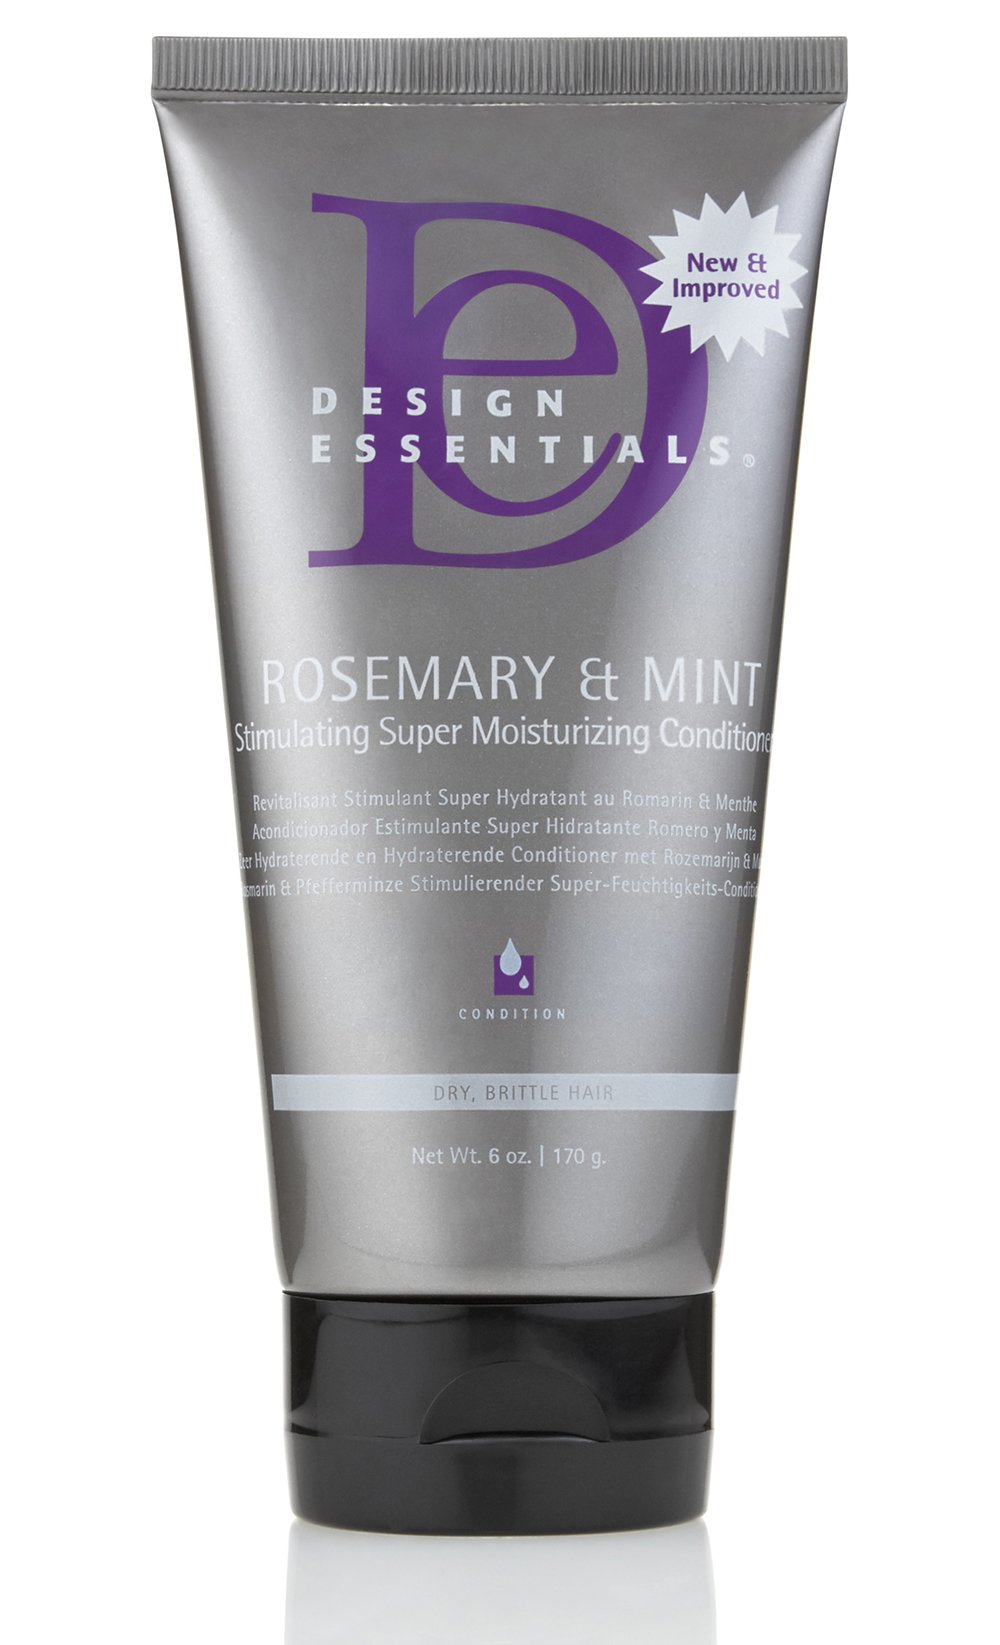 Design Essentials Rosemary & Mint Super Moisturizing Ultra Stimulating Conditioner Best for Medium to Coarse Textures-Insane Moisture for Dry Hair - 6oz.